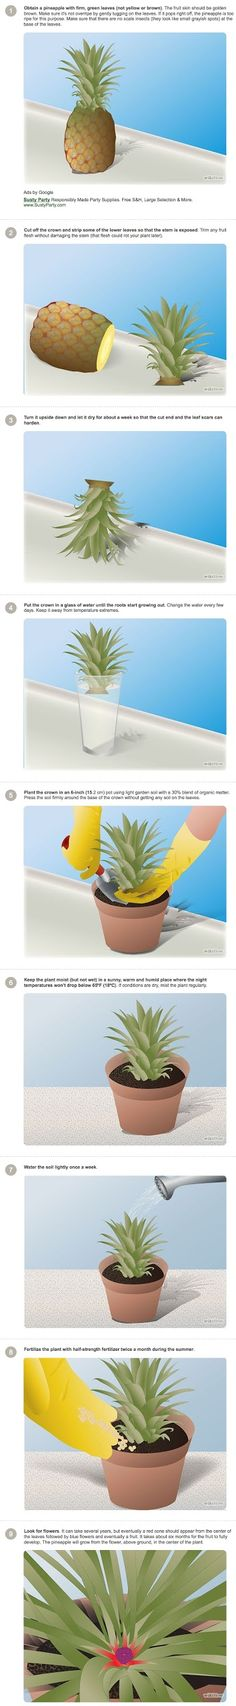 How to grow a pineapple at home, then make Pineapple Salsa